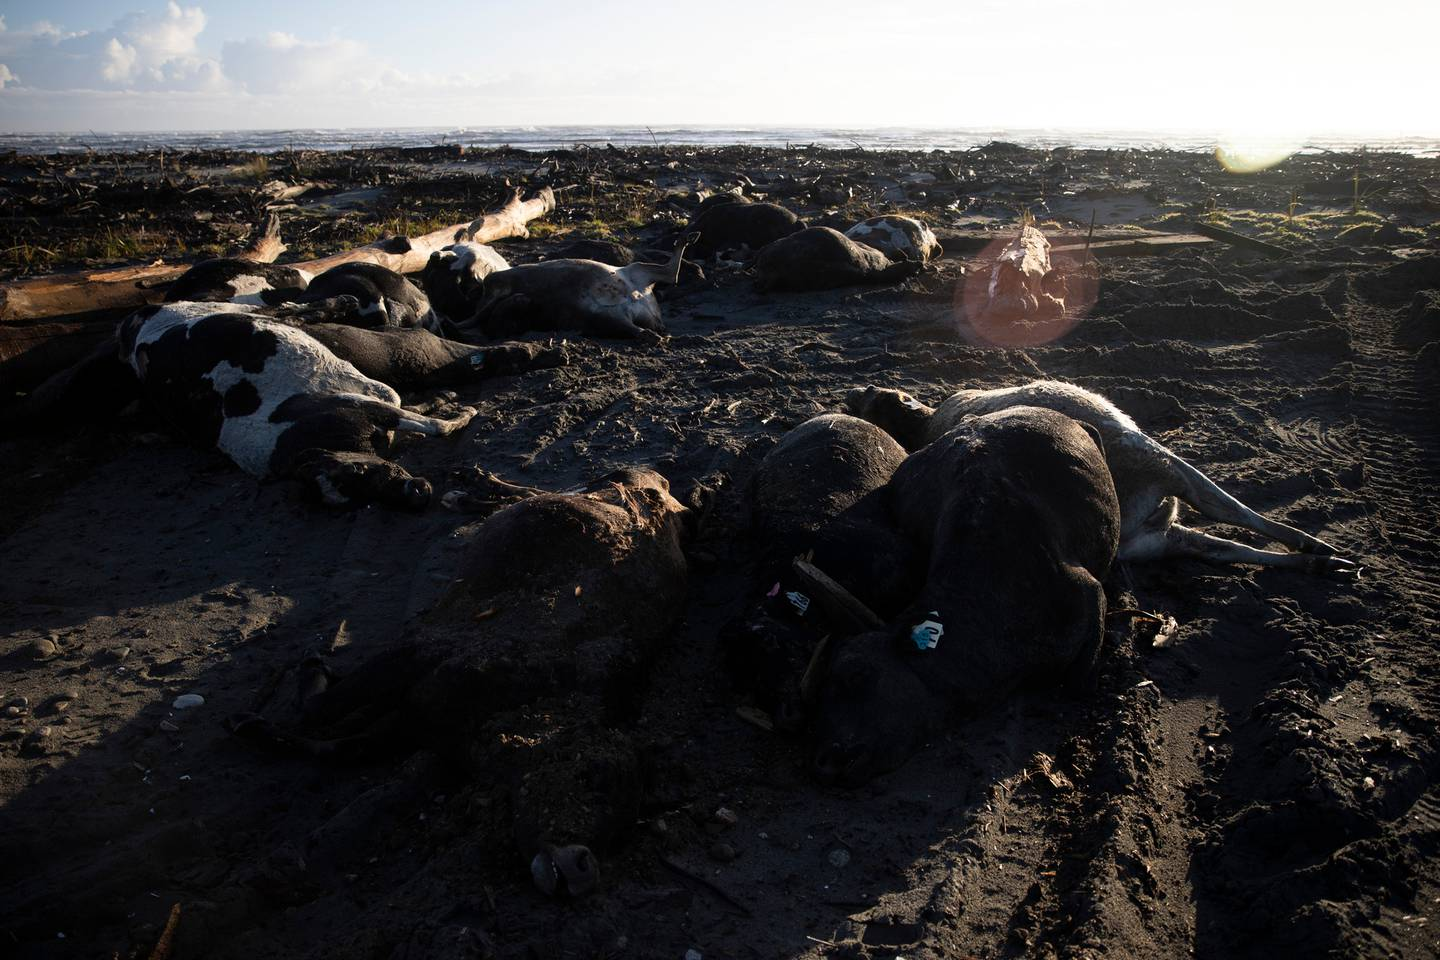 Hundreds of cows were killed in the floods at the weekend. Photo: NZ Herald